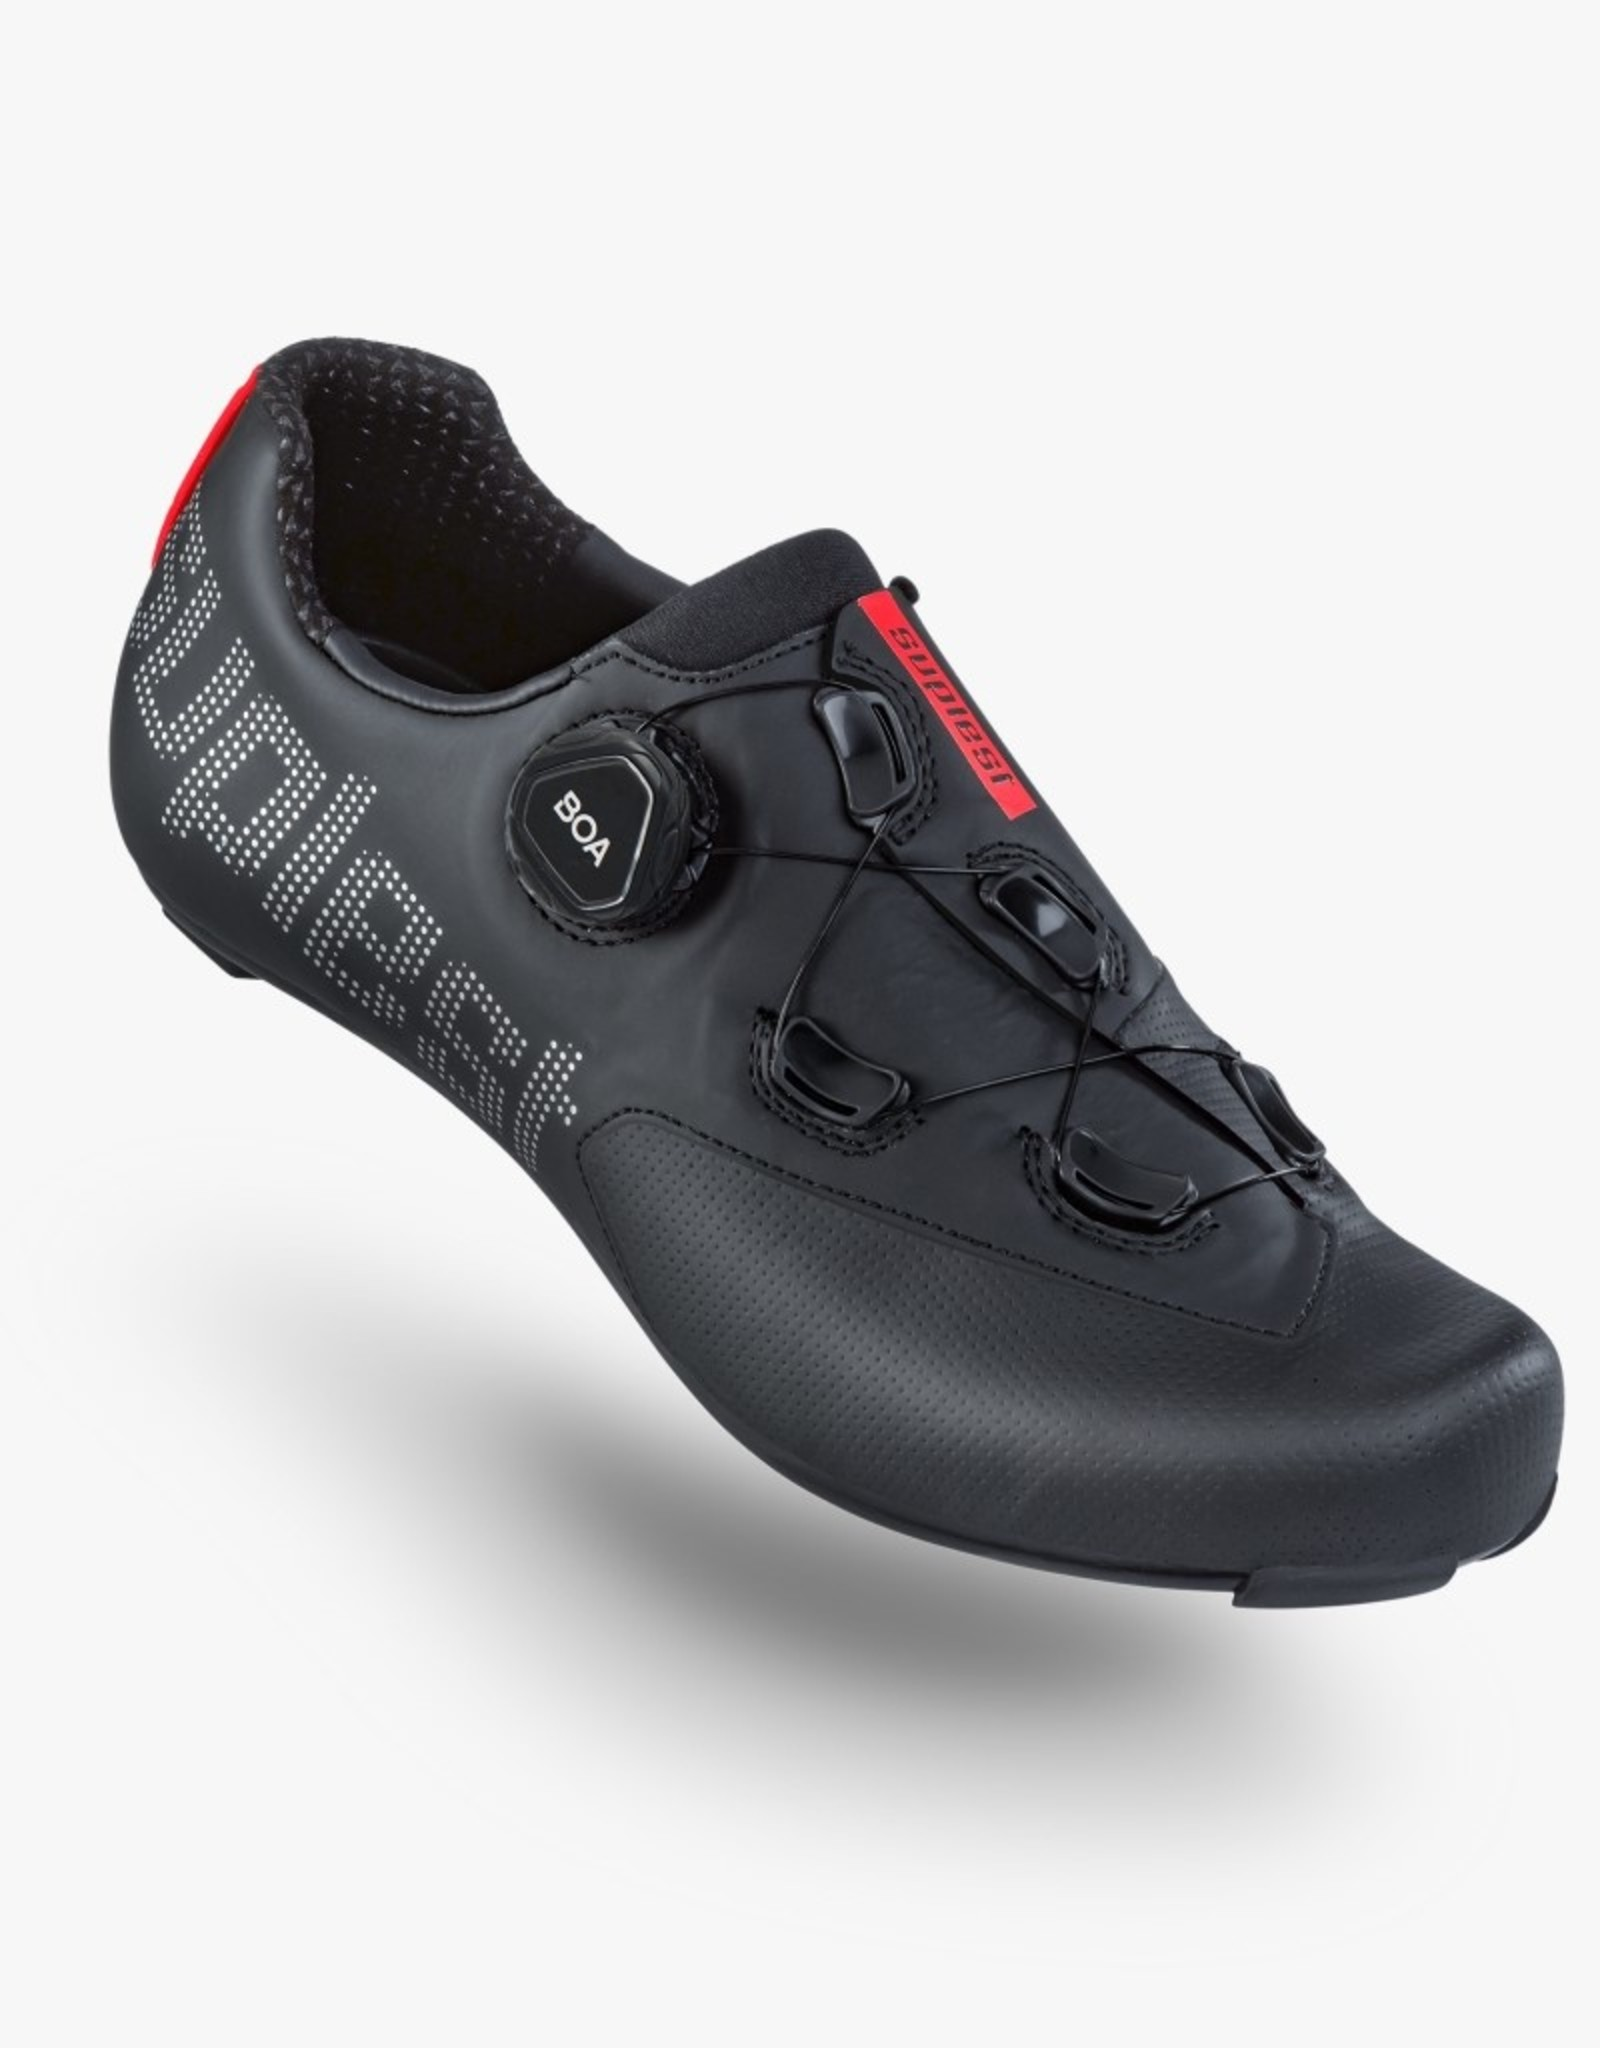 Suplest Cycling Shoes EDGE+ Road Sport - black/silver